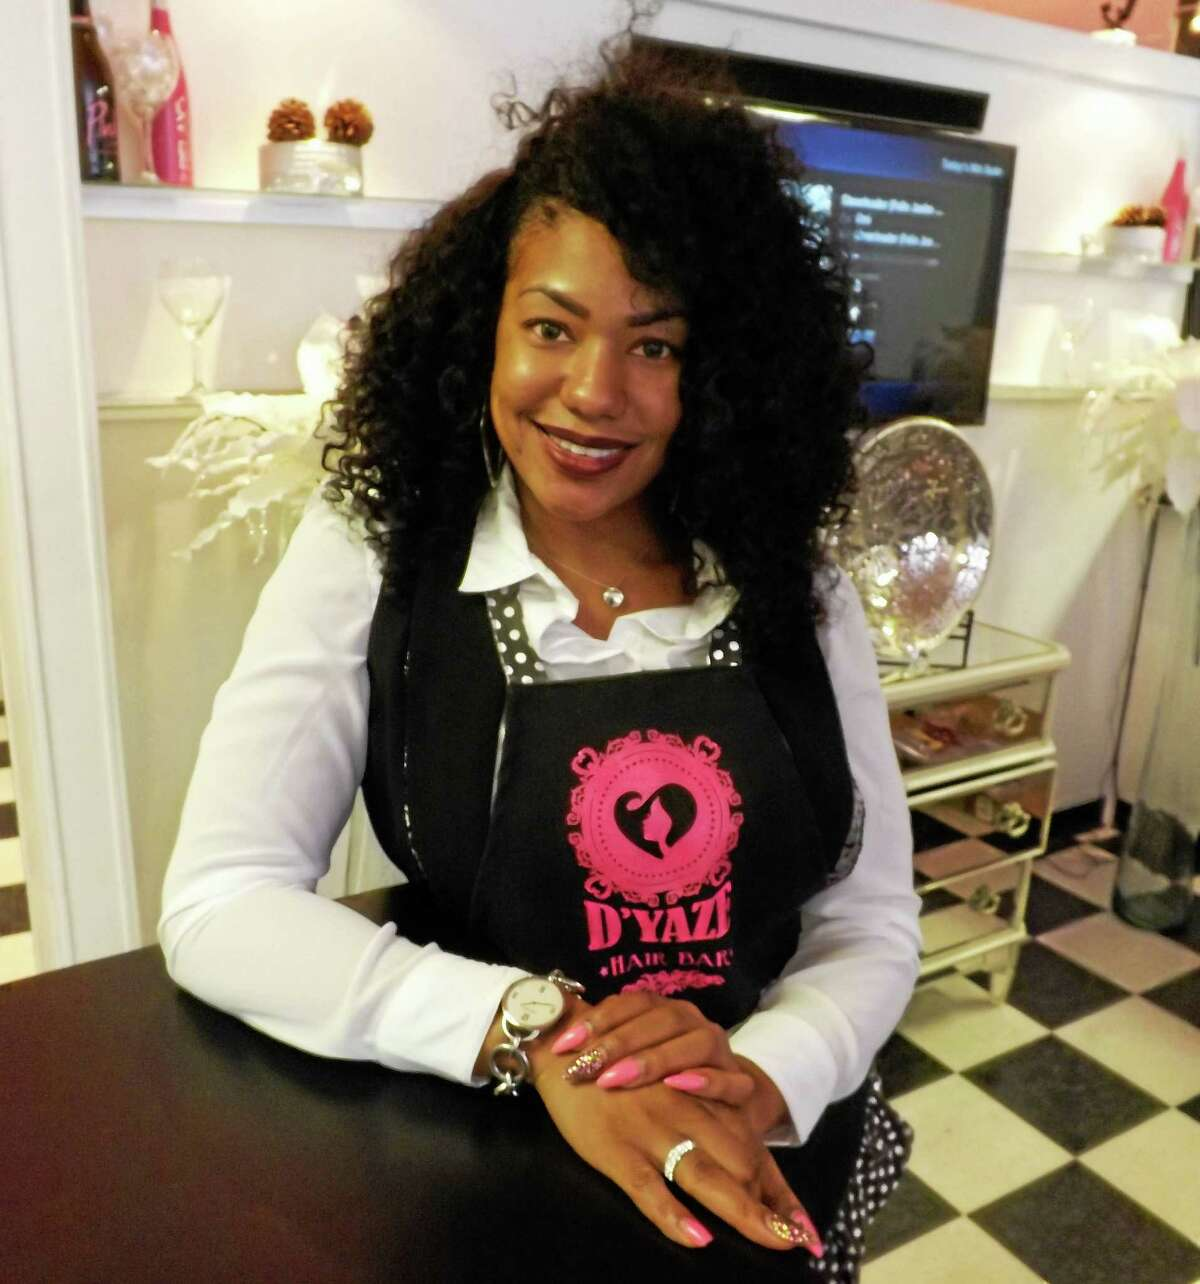 On Oct. 24, D'Yaze Hair Bar owner Doris Glenn will host a Pink Tie Bash in Middletown.